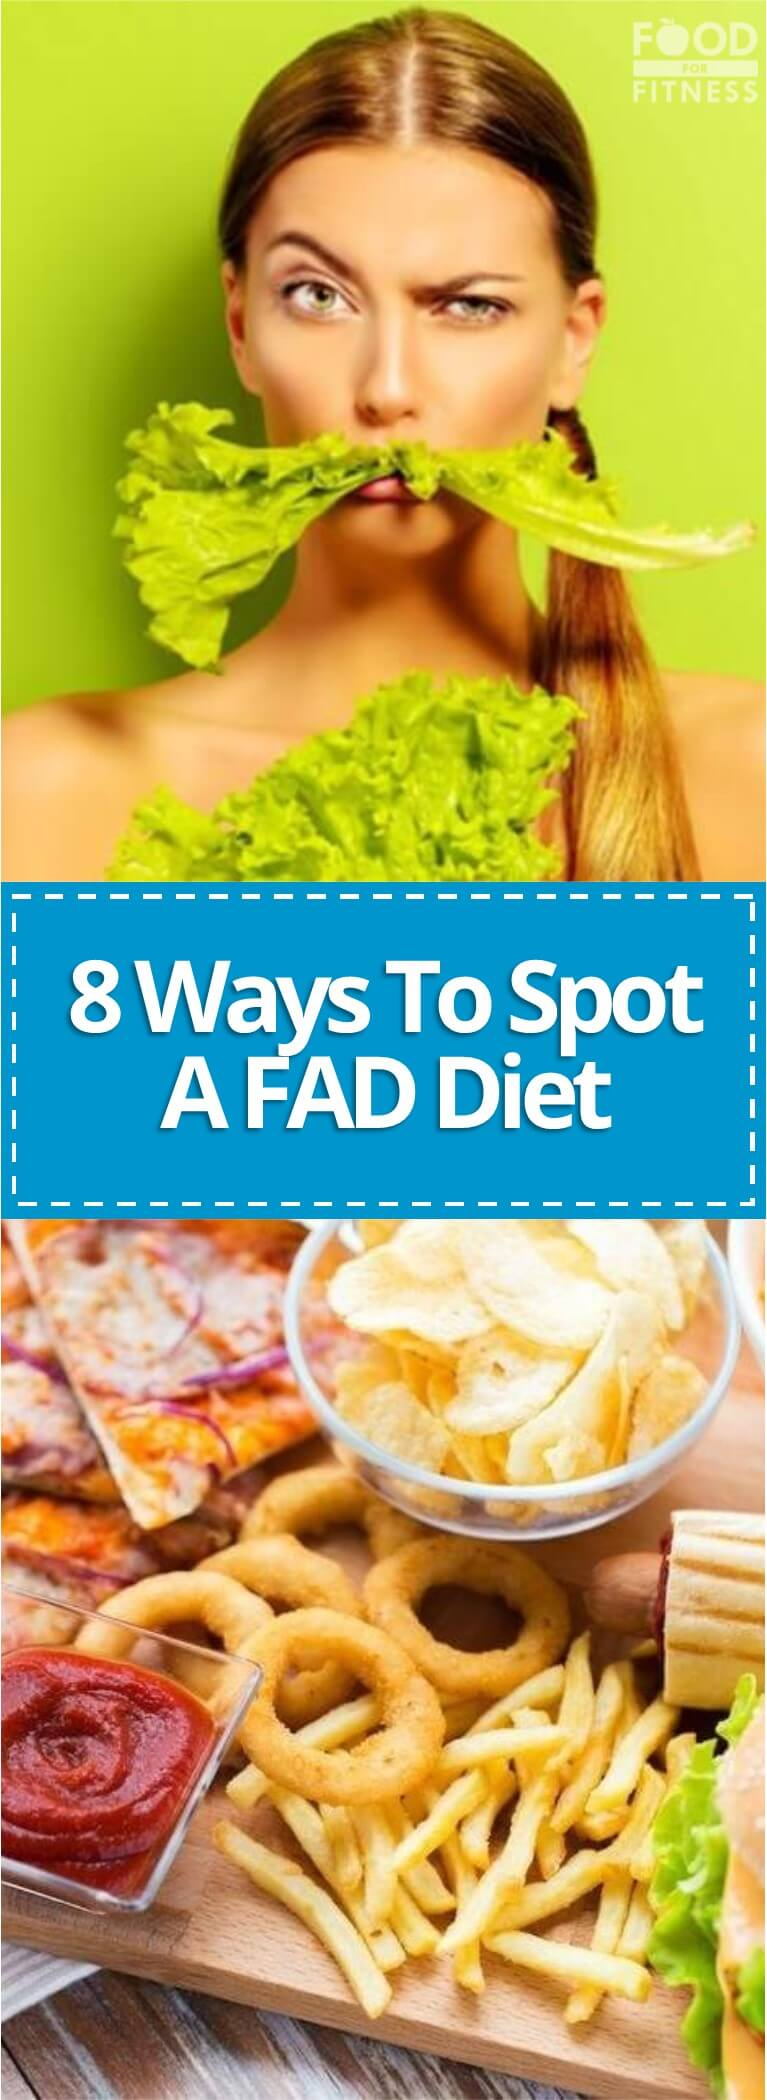 Here are the top 8 ways to spot FAD diets, to ensure you save your cash and your dignity.